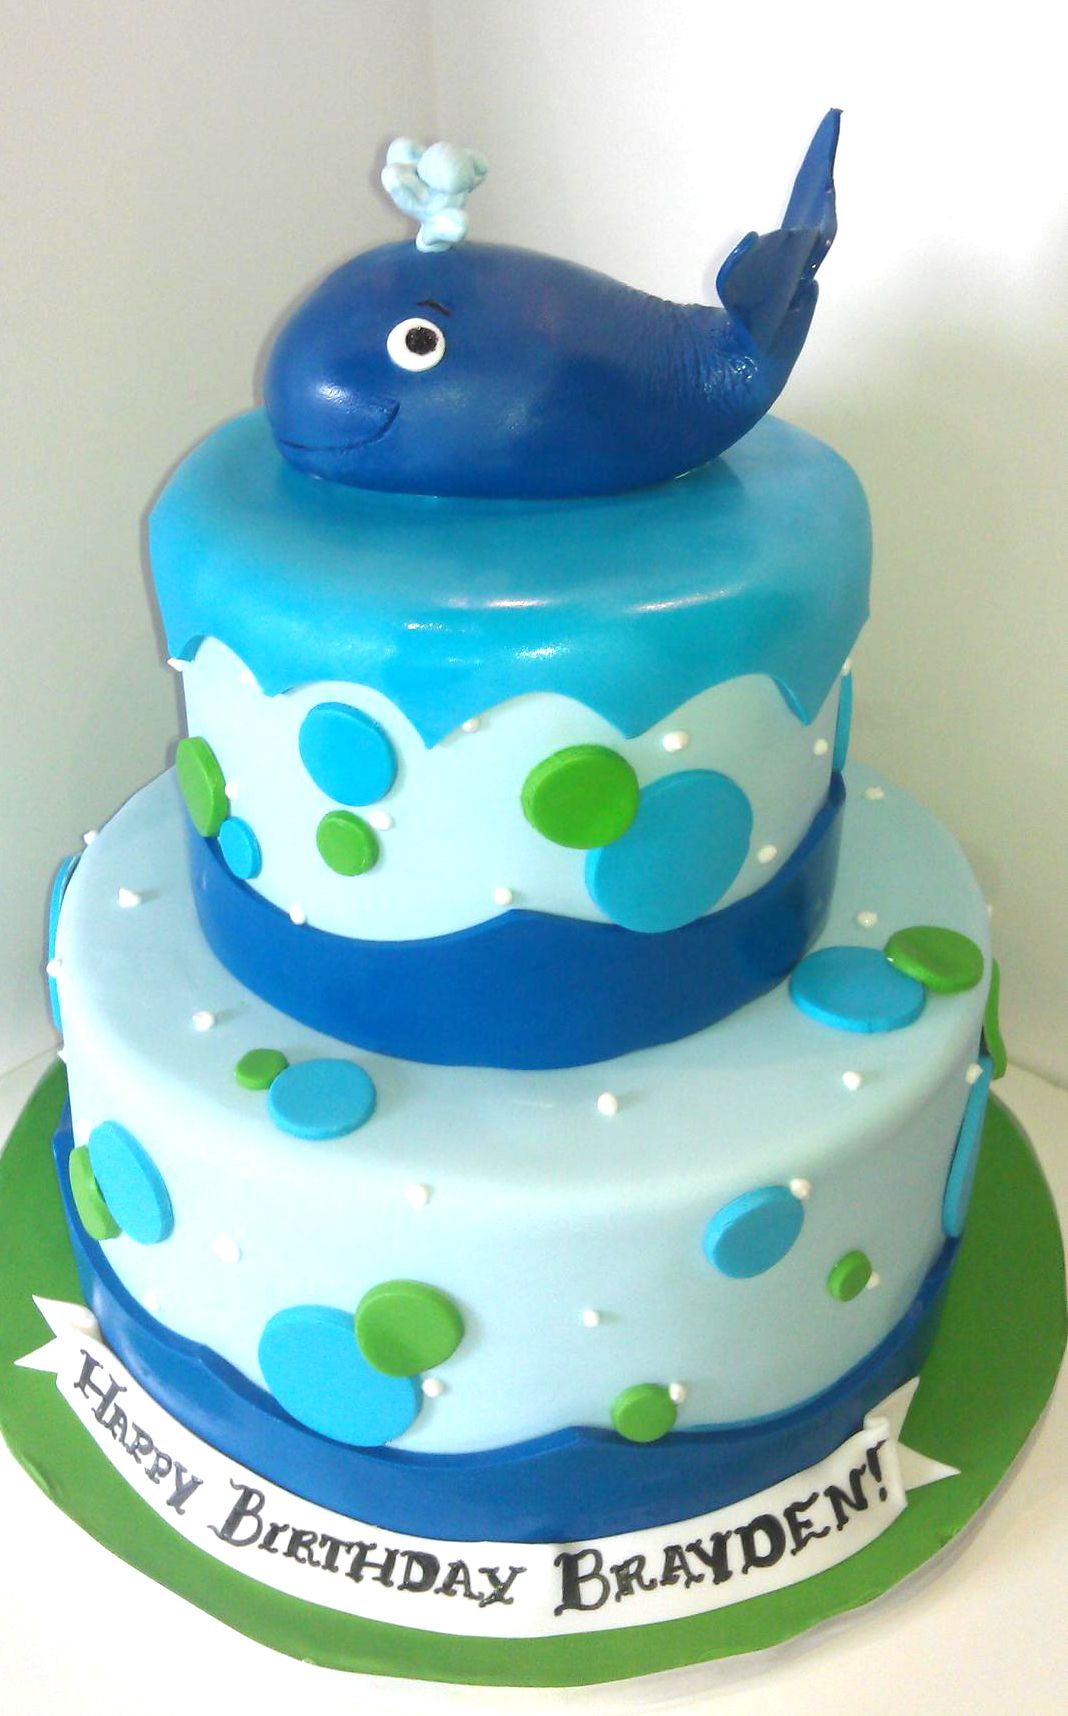 Blue Whale Birthday Cake Cakes Pinterest Whale birthday